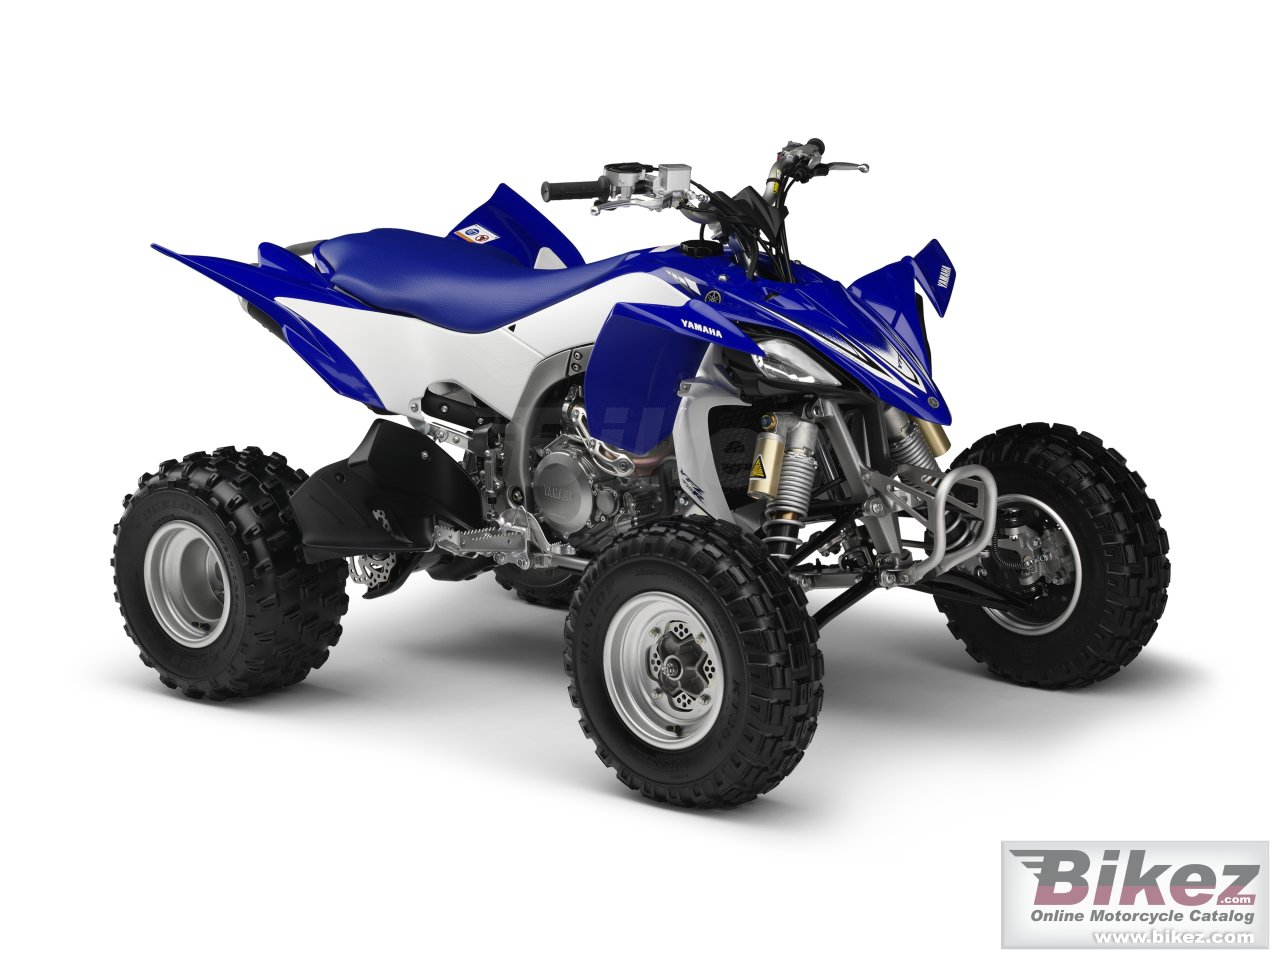 Big Yamaha yfz450r picture and wallpaper from Bikez.com